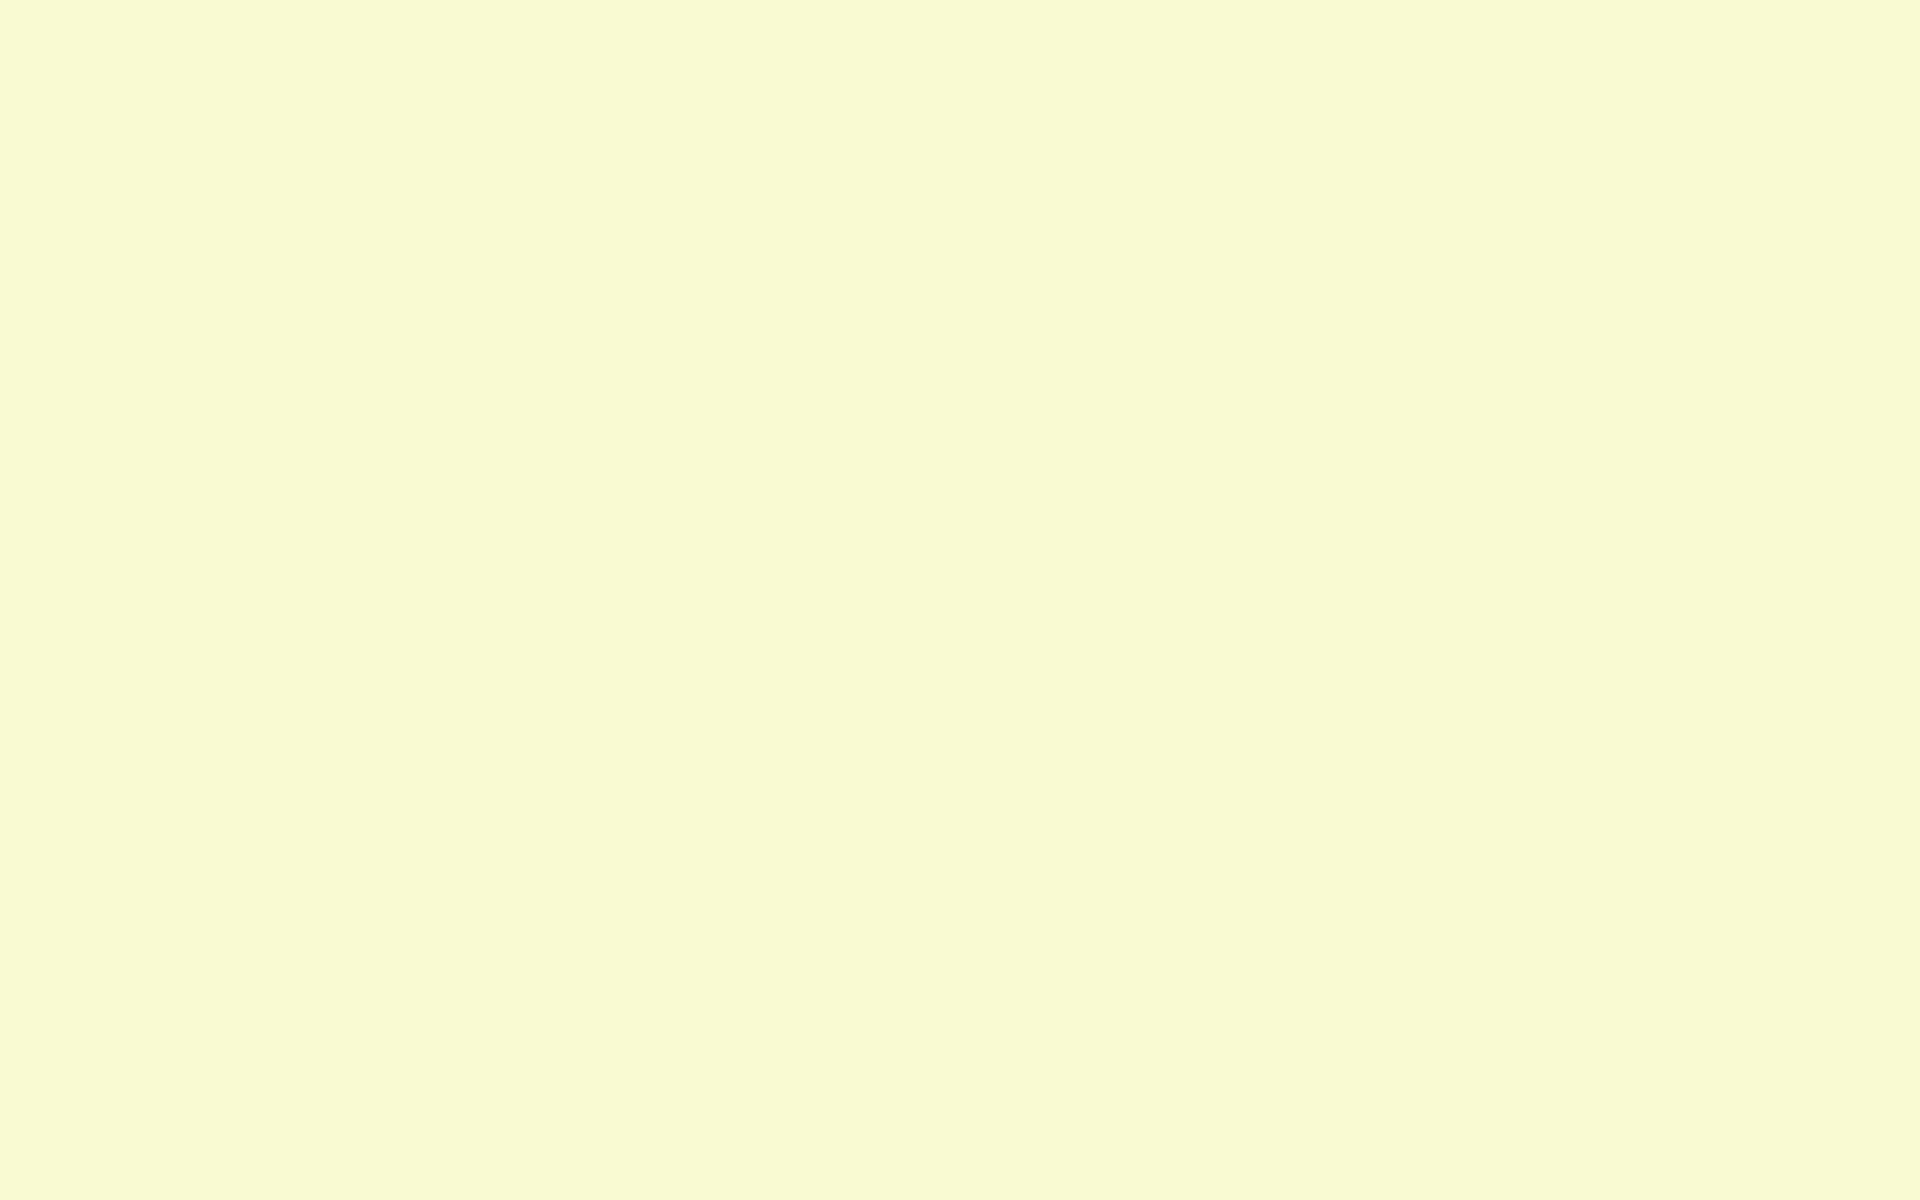 1920x1200 Light Goldenrod Yellow Solid Color Background